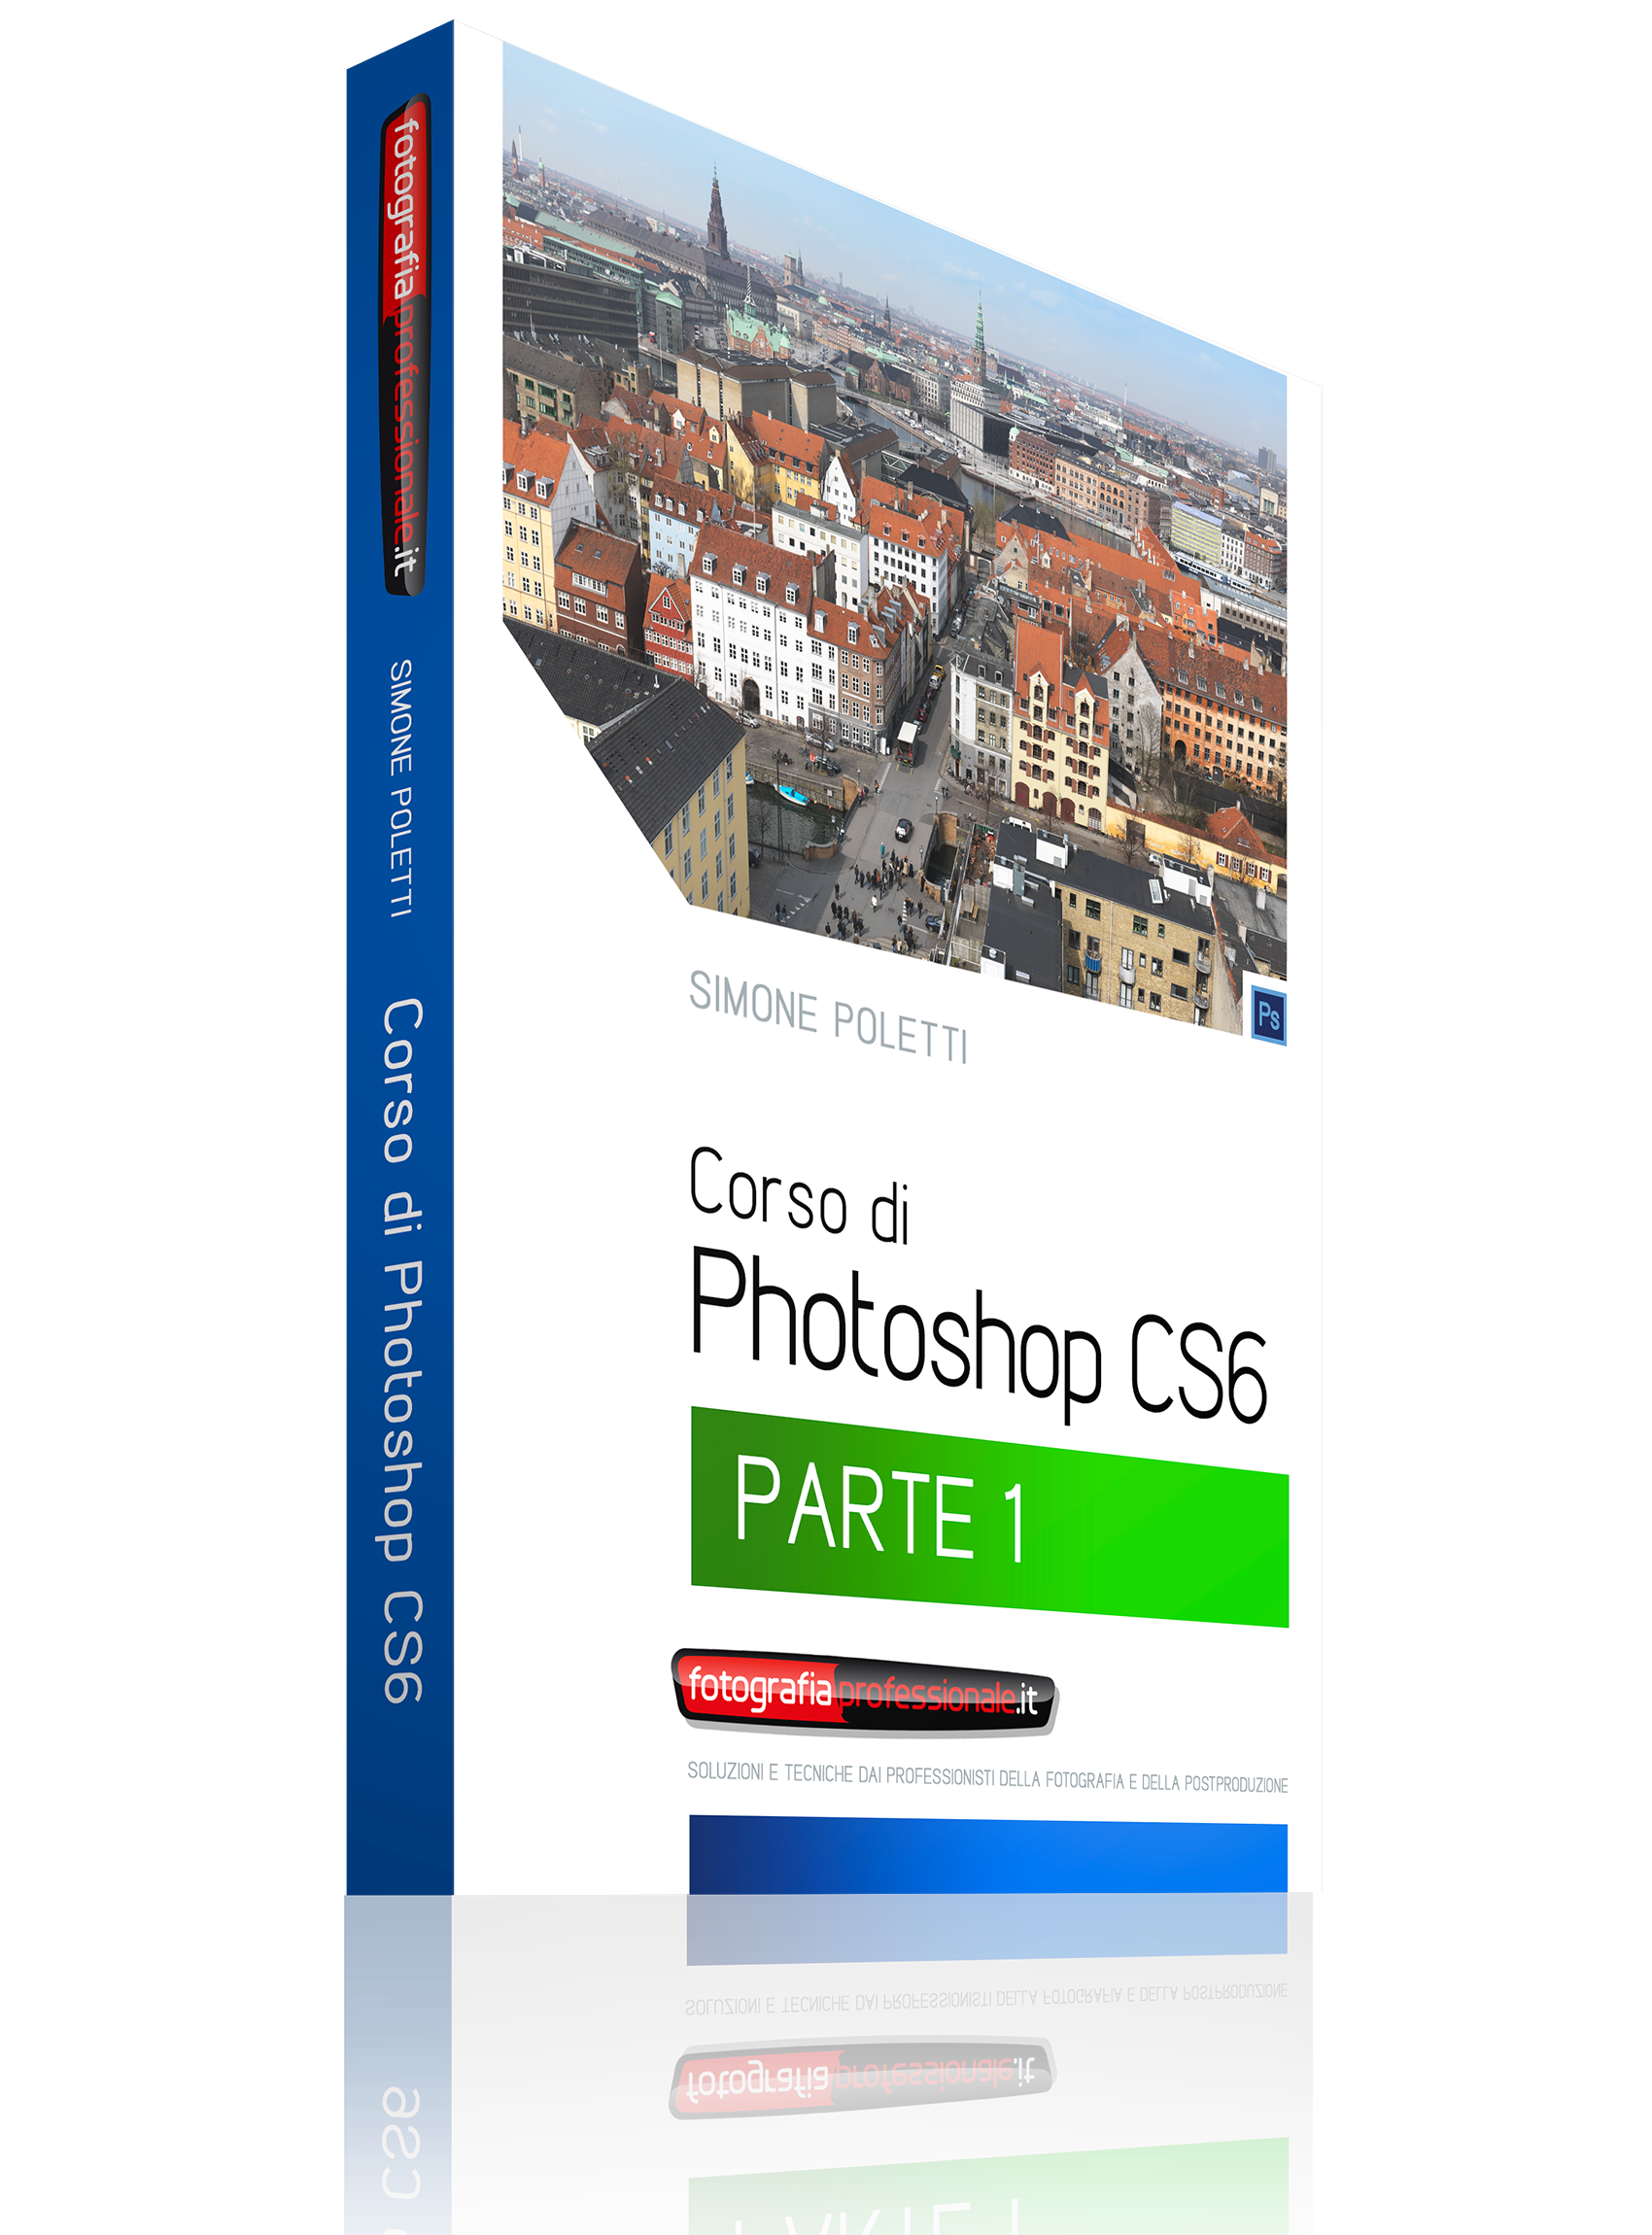 Corso di Photoshop CS6 Parte 1 di 3